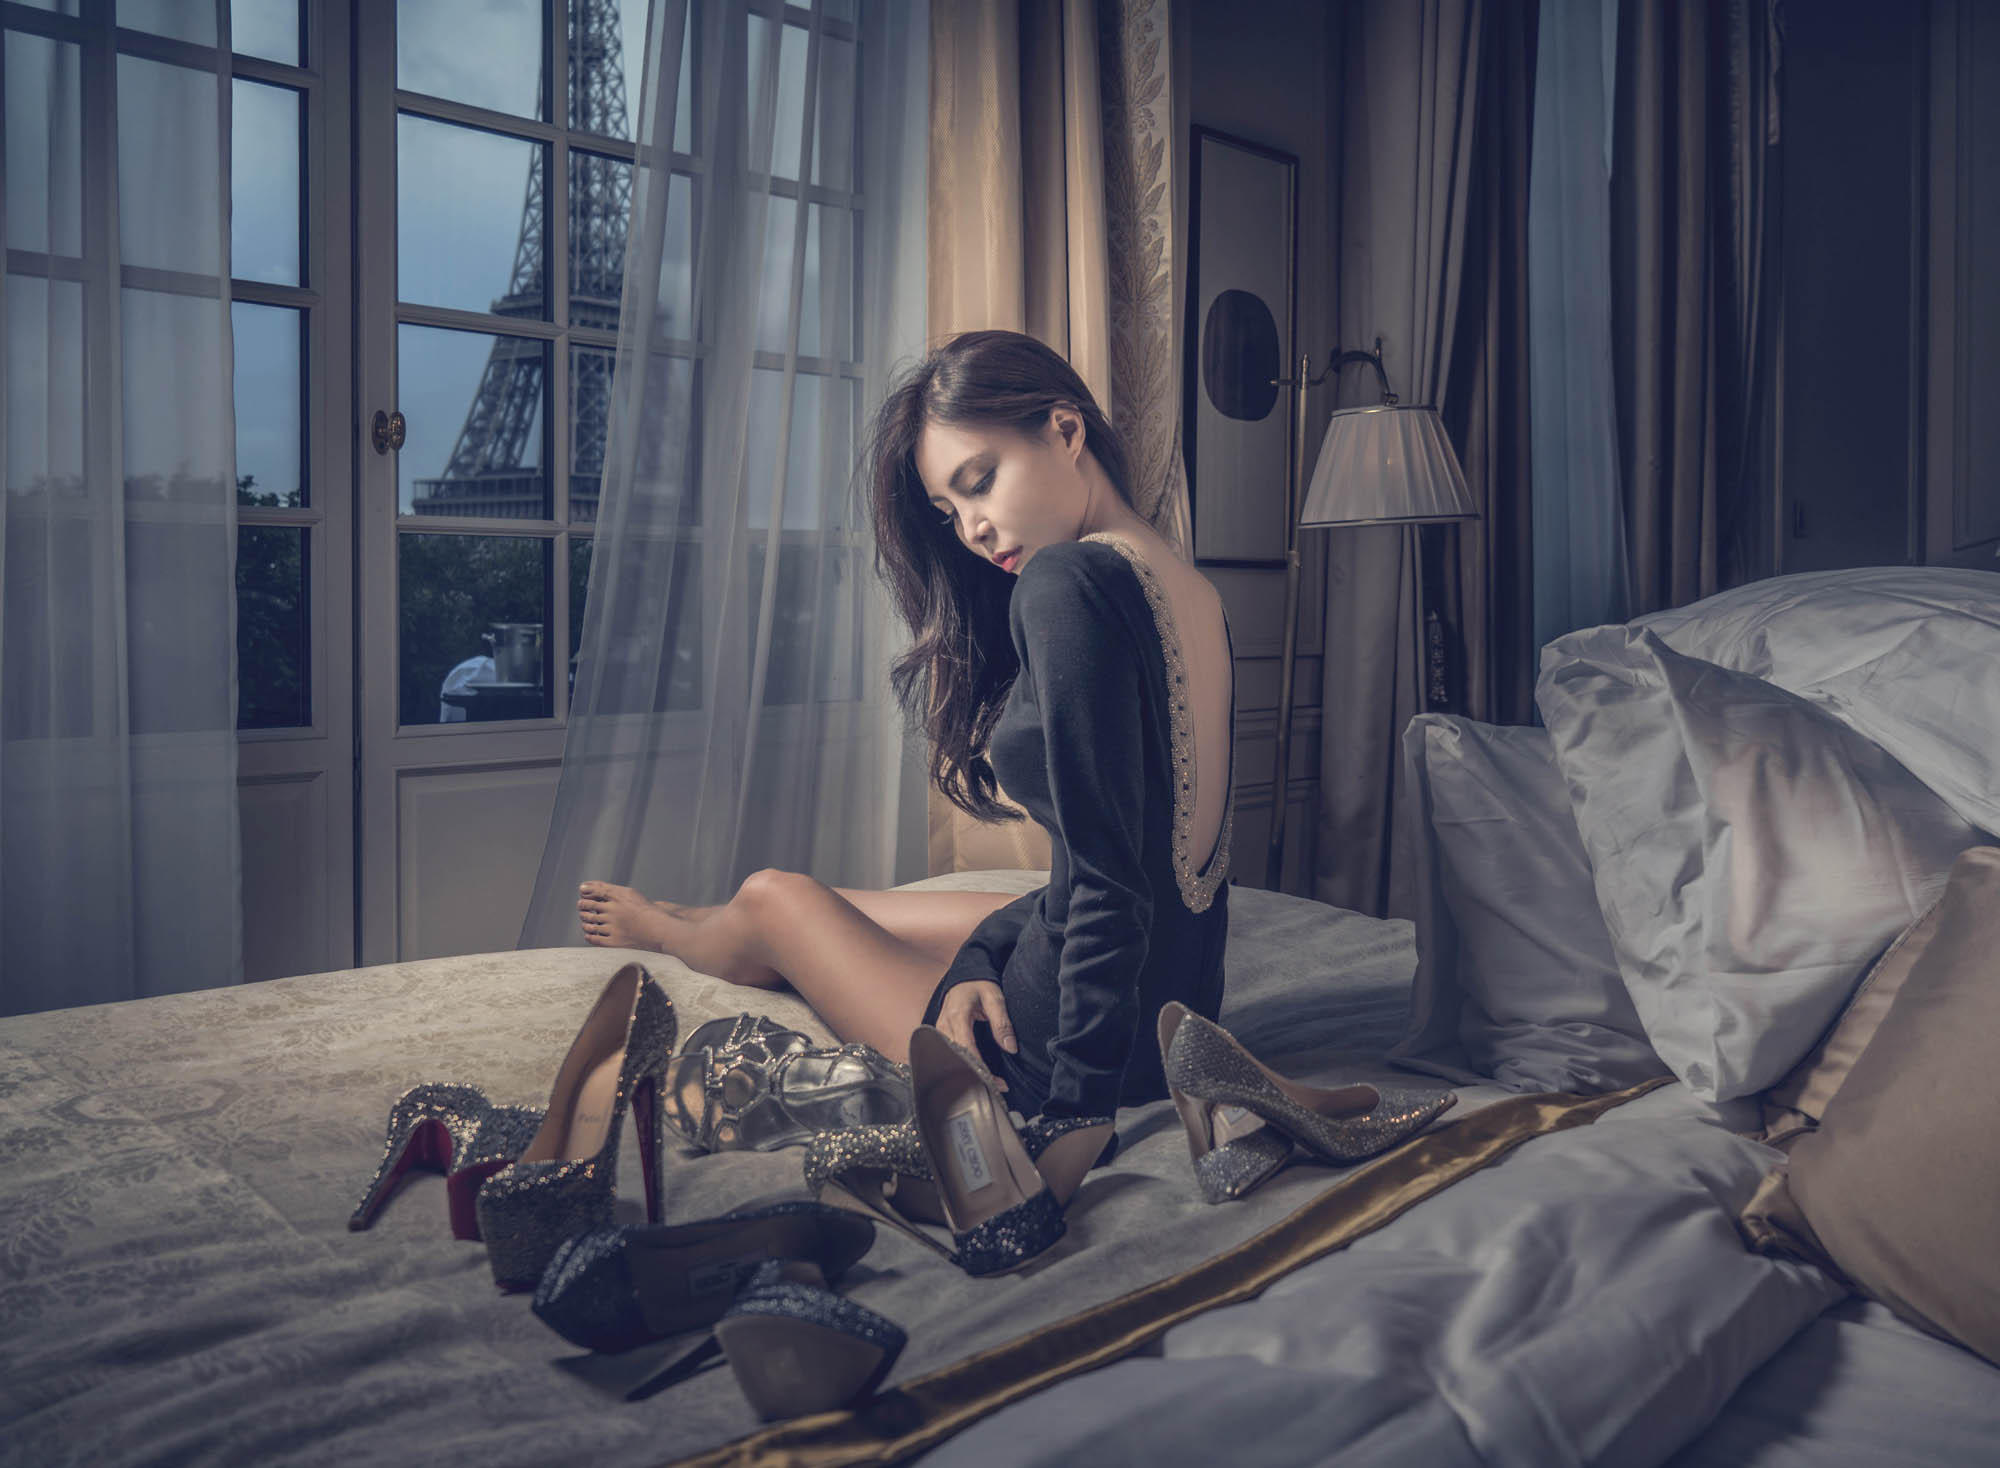 Bride in black backless short dress sitting on bed with shoes, by CM Leung